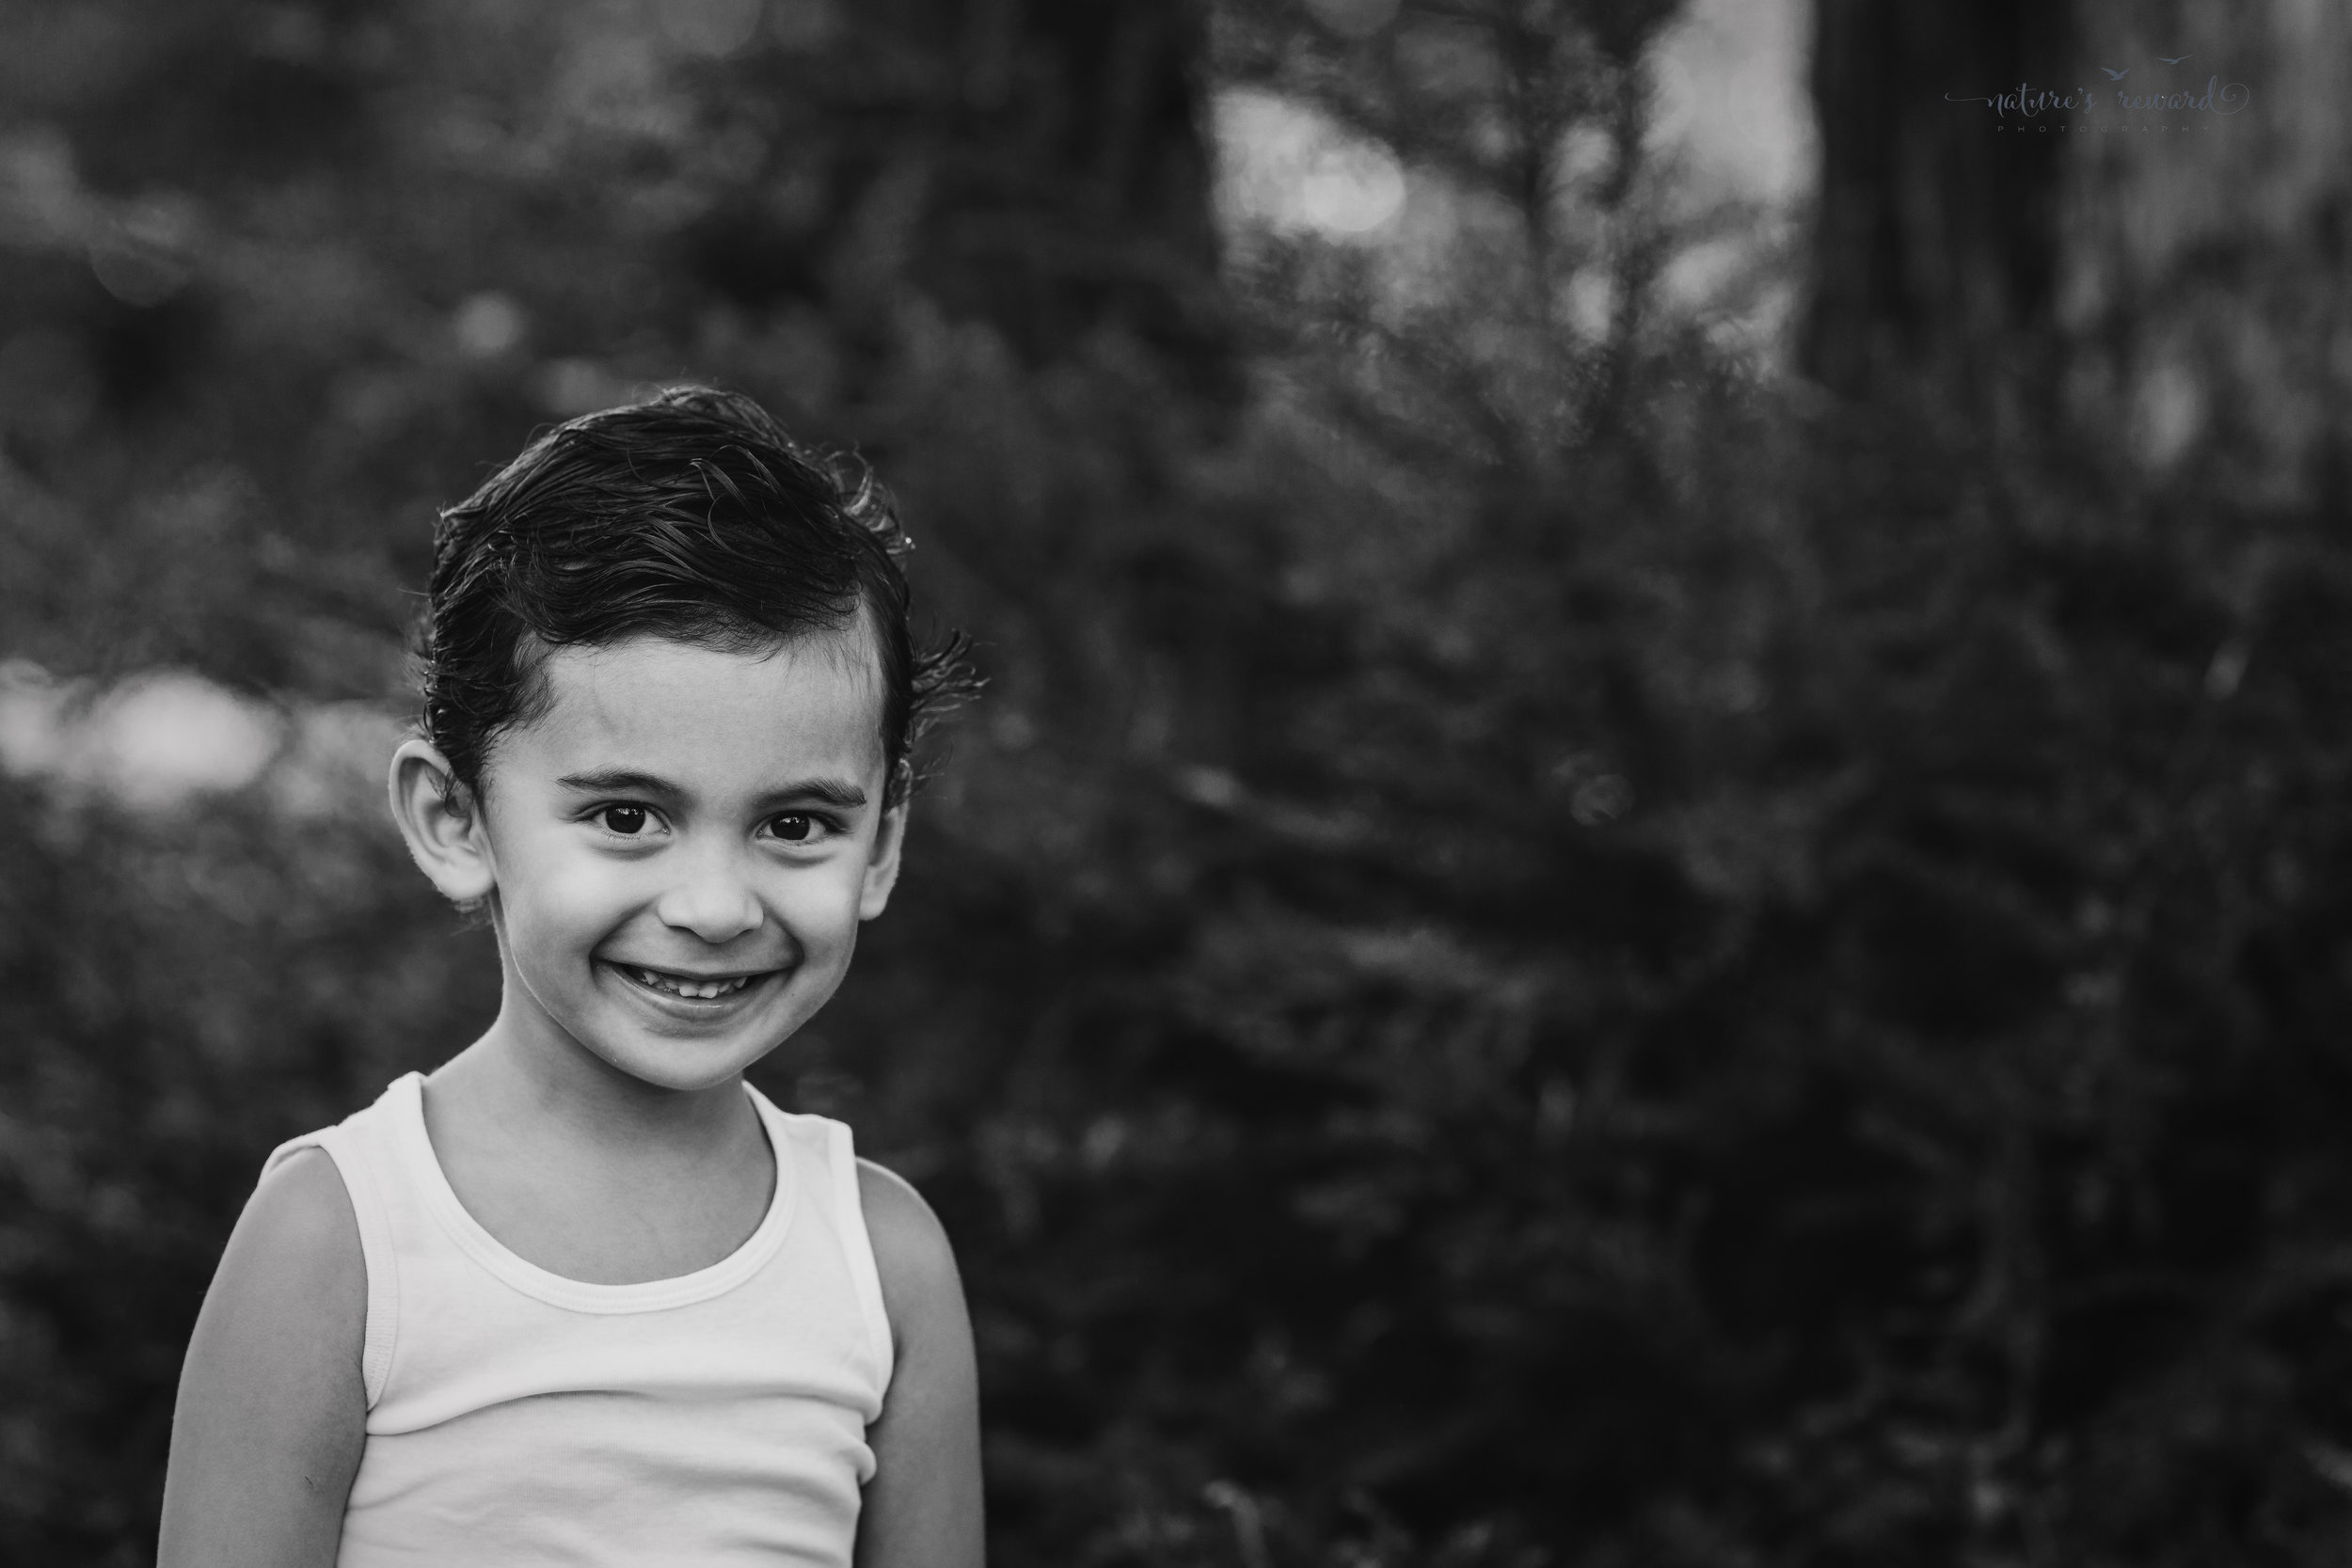 Close up black and white portrait of a young boy by Nature's Reward Photography